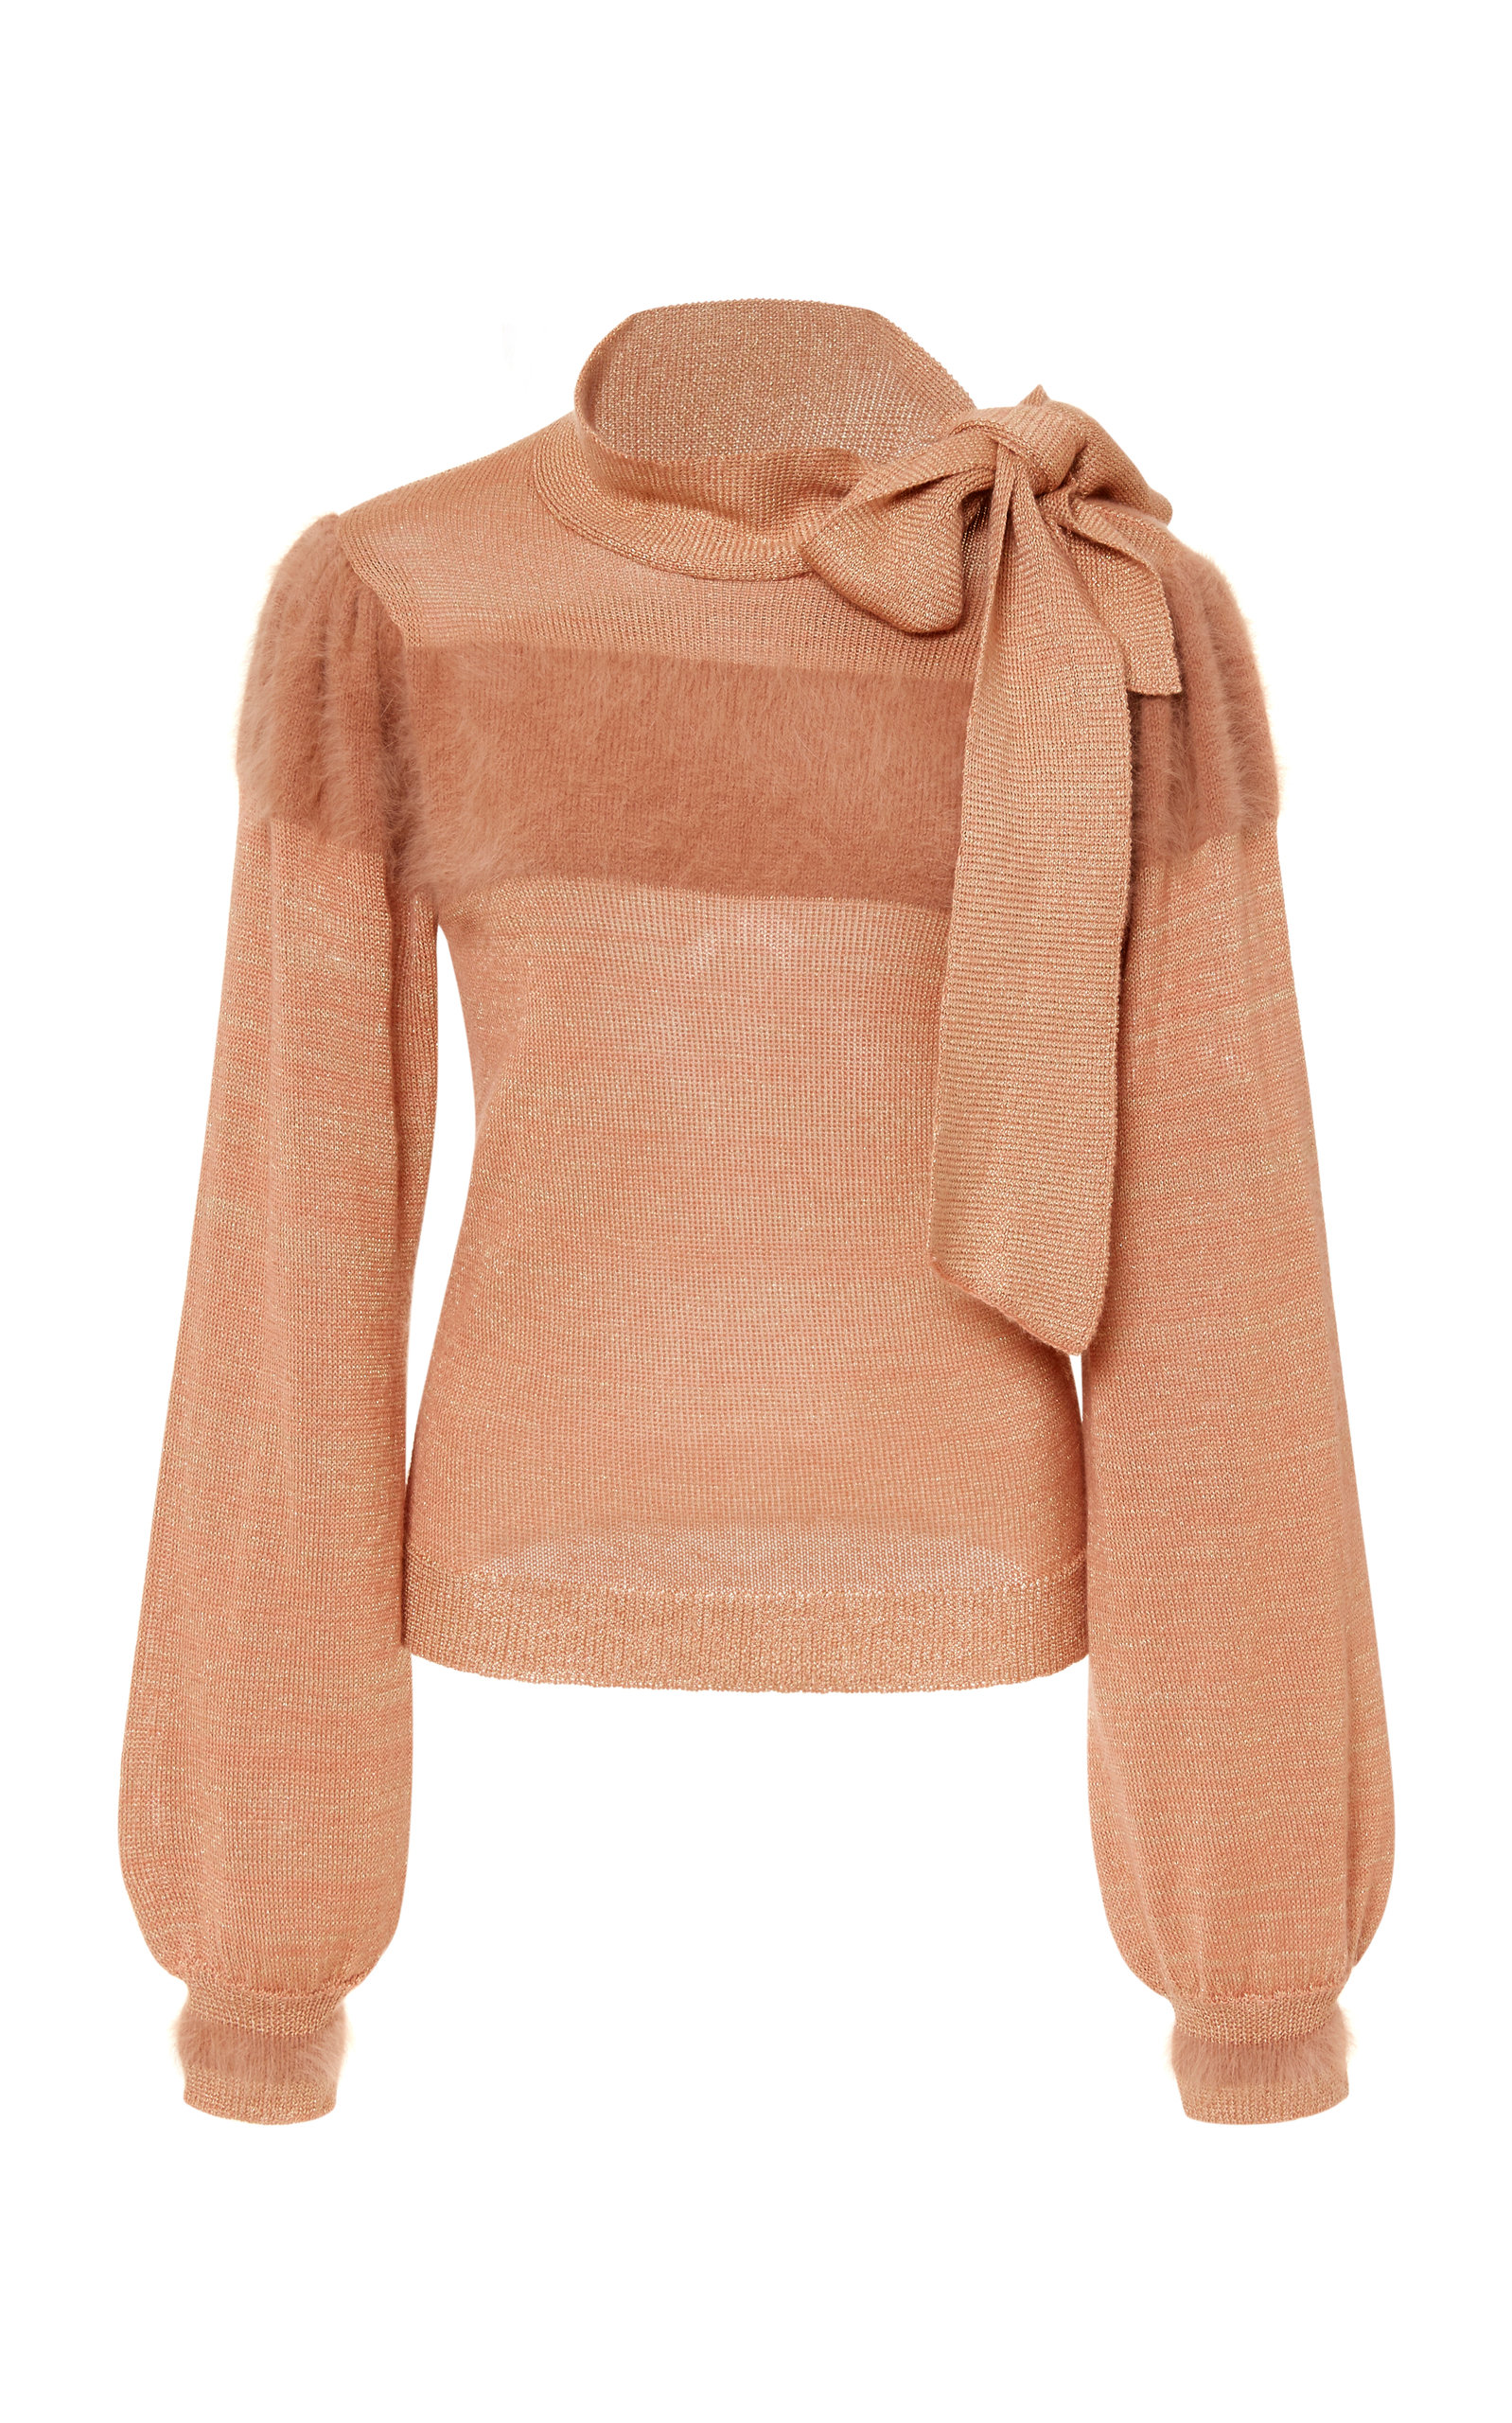 Fabia Neck Tie Pullover in Pink